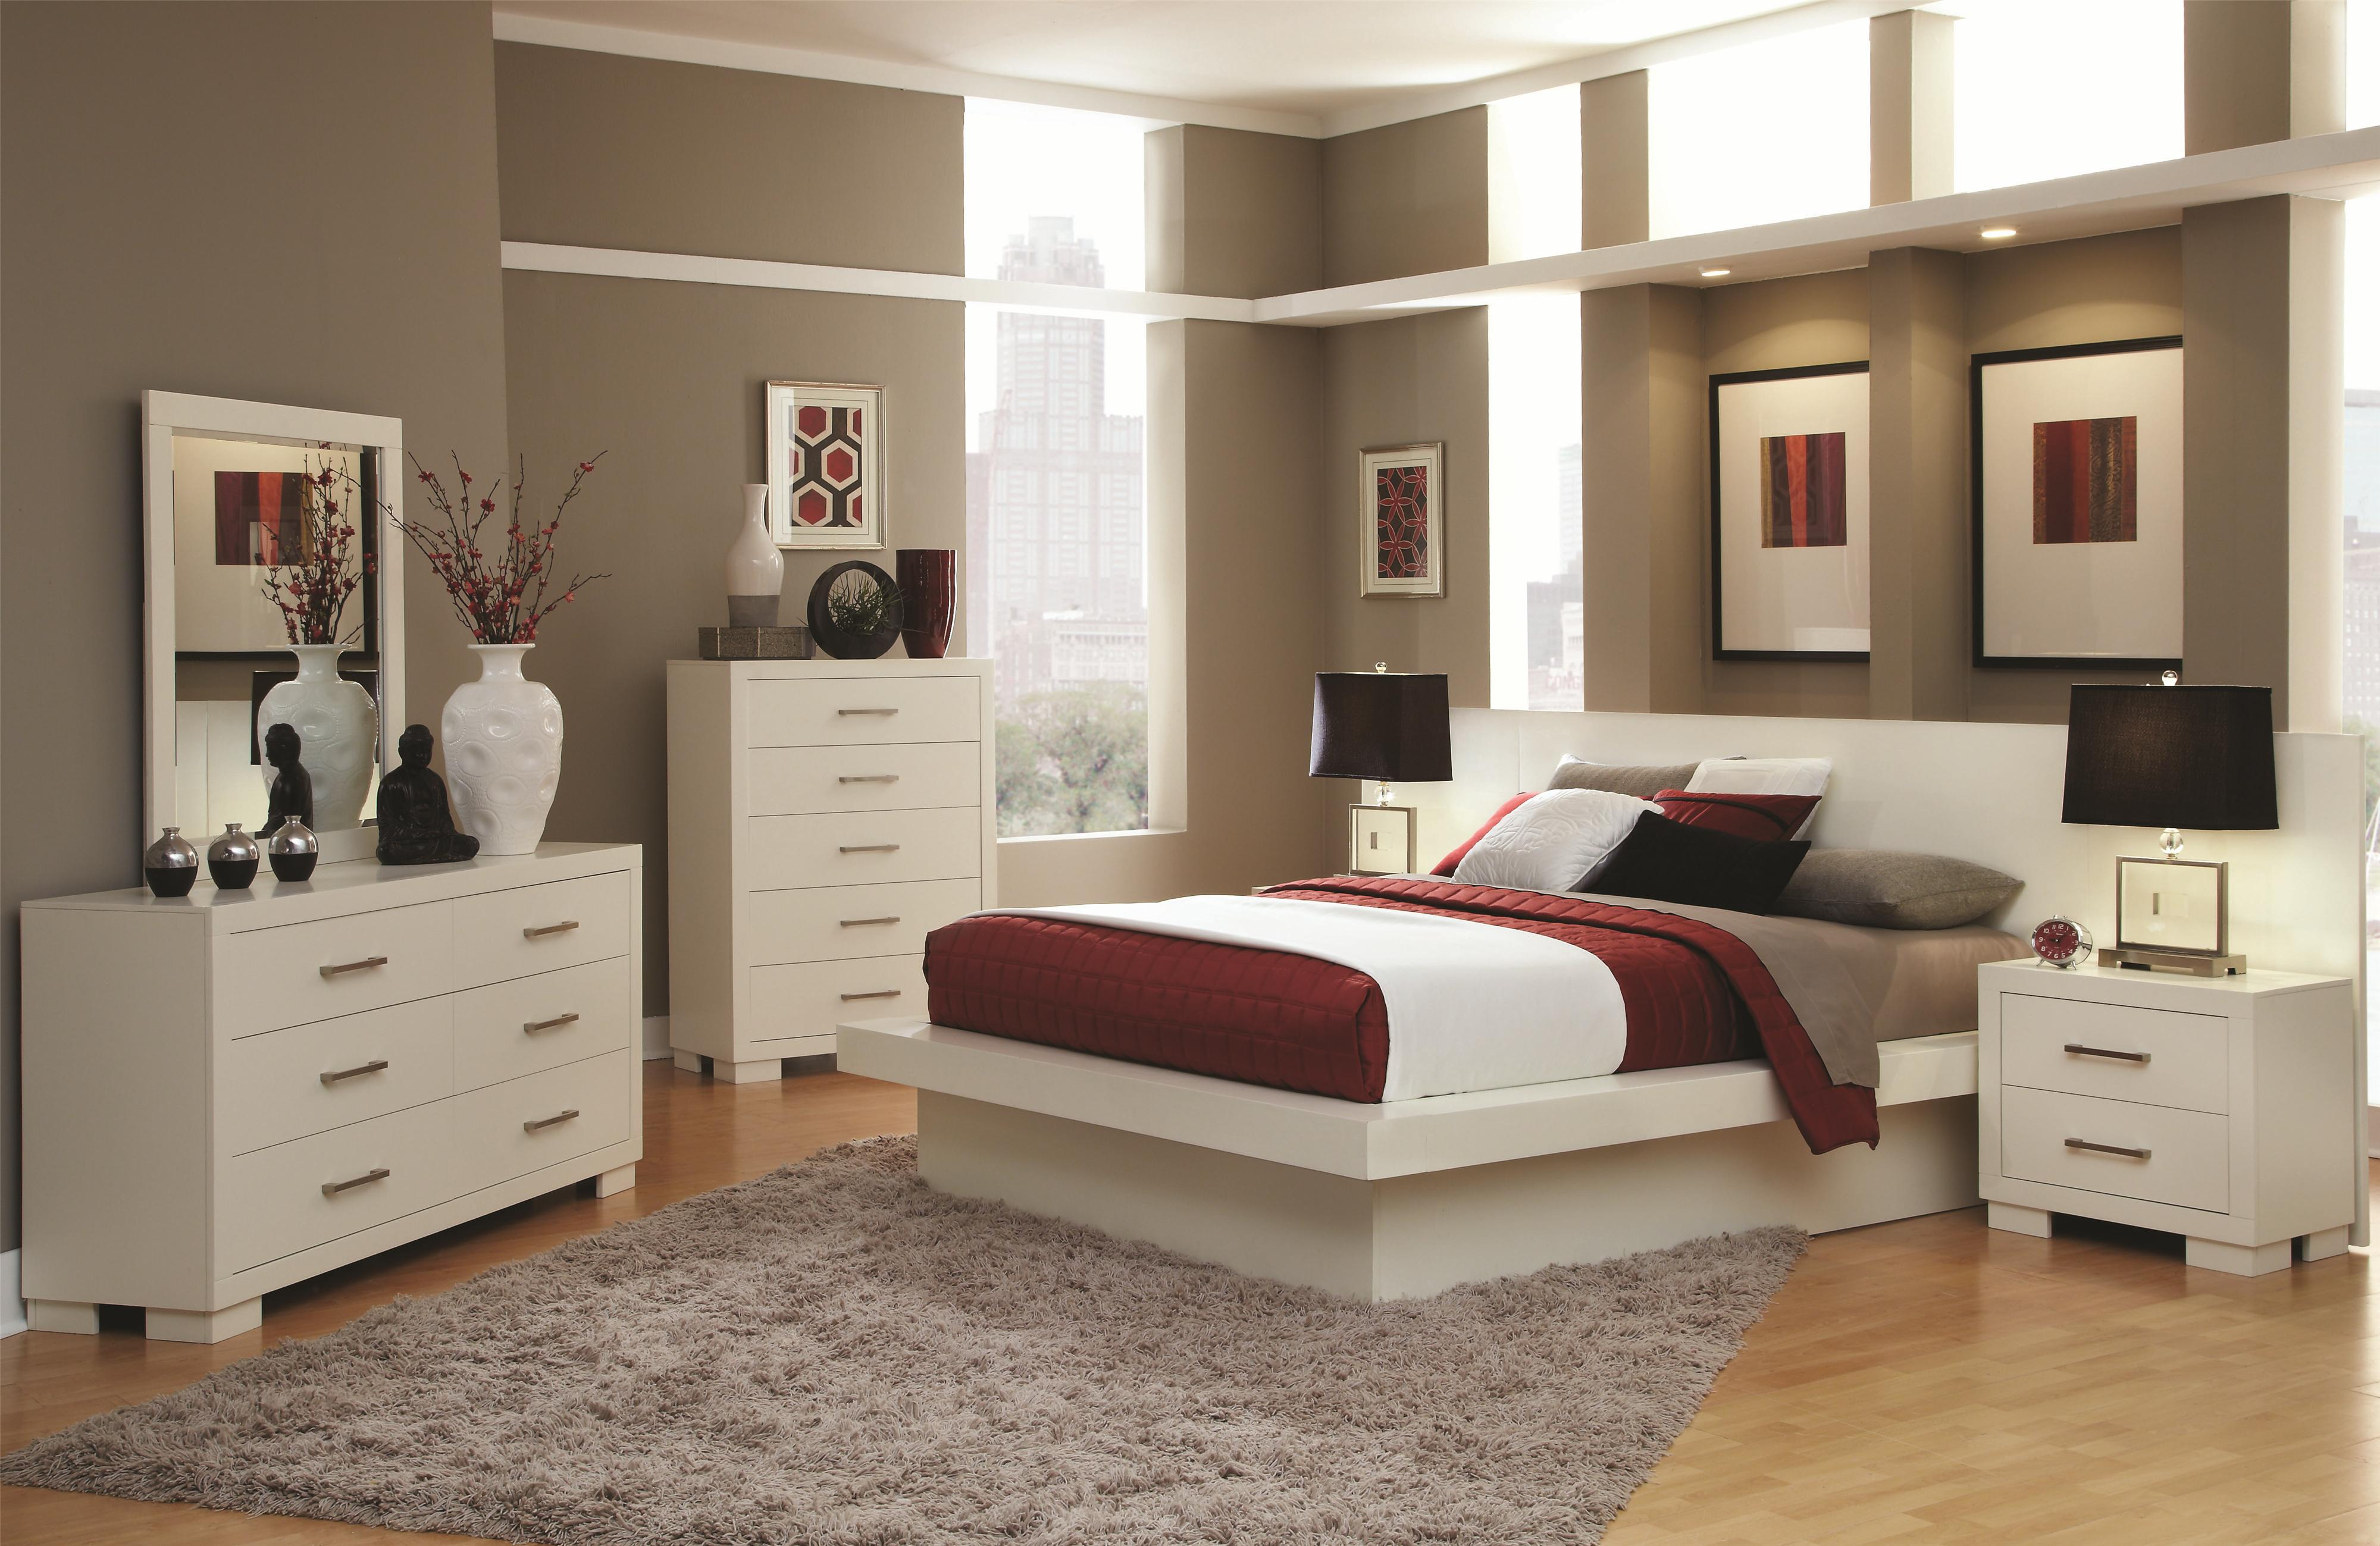 Coaster Jessica Queen Pier Platform Bed With Rail Seating And Lights |  Michaelu0027s Furniture Warehouse | Pier Beds